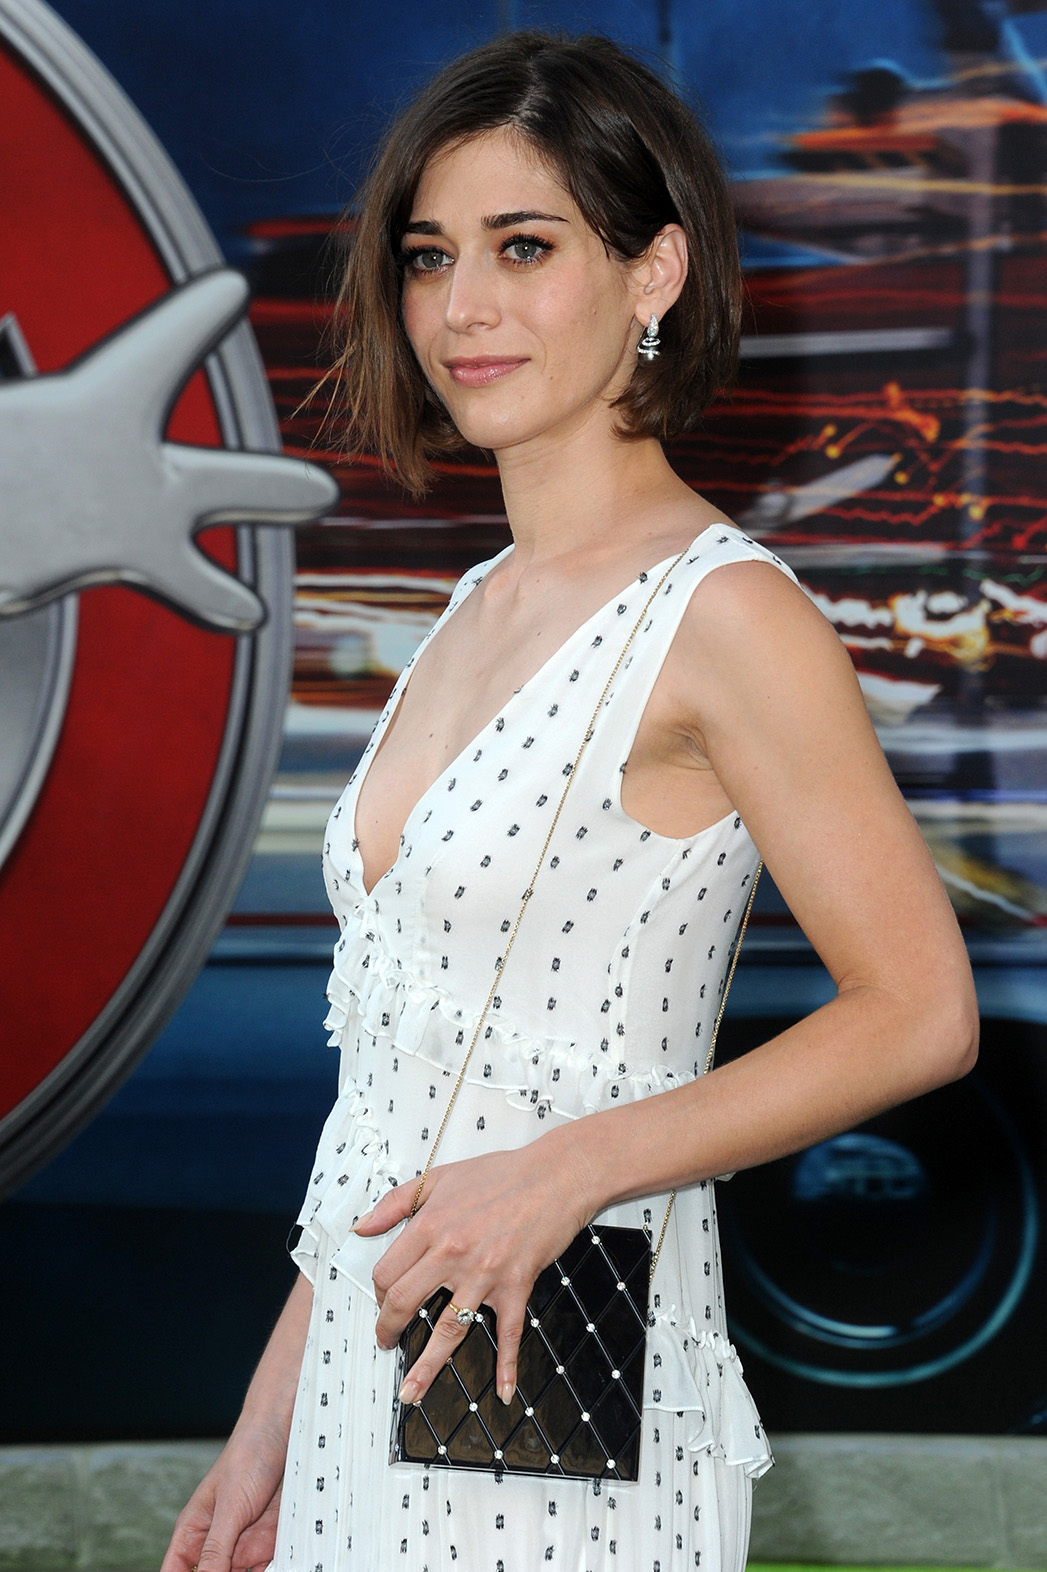 Lizzy Caplan Ghostbusters Getty - P 2016